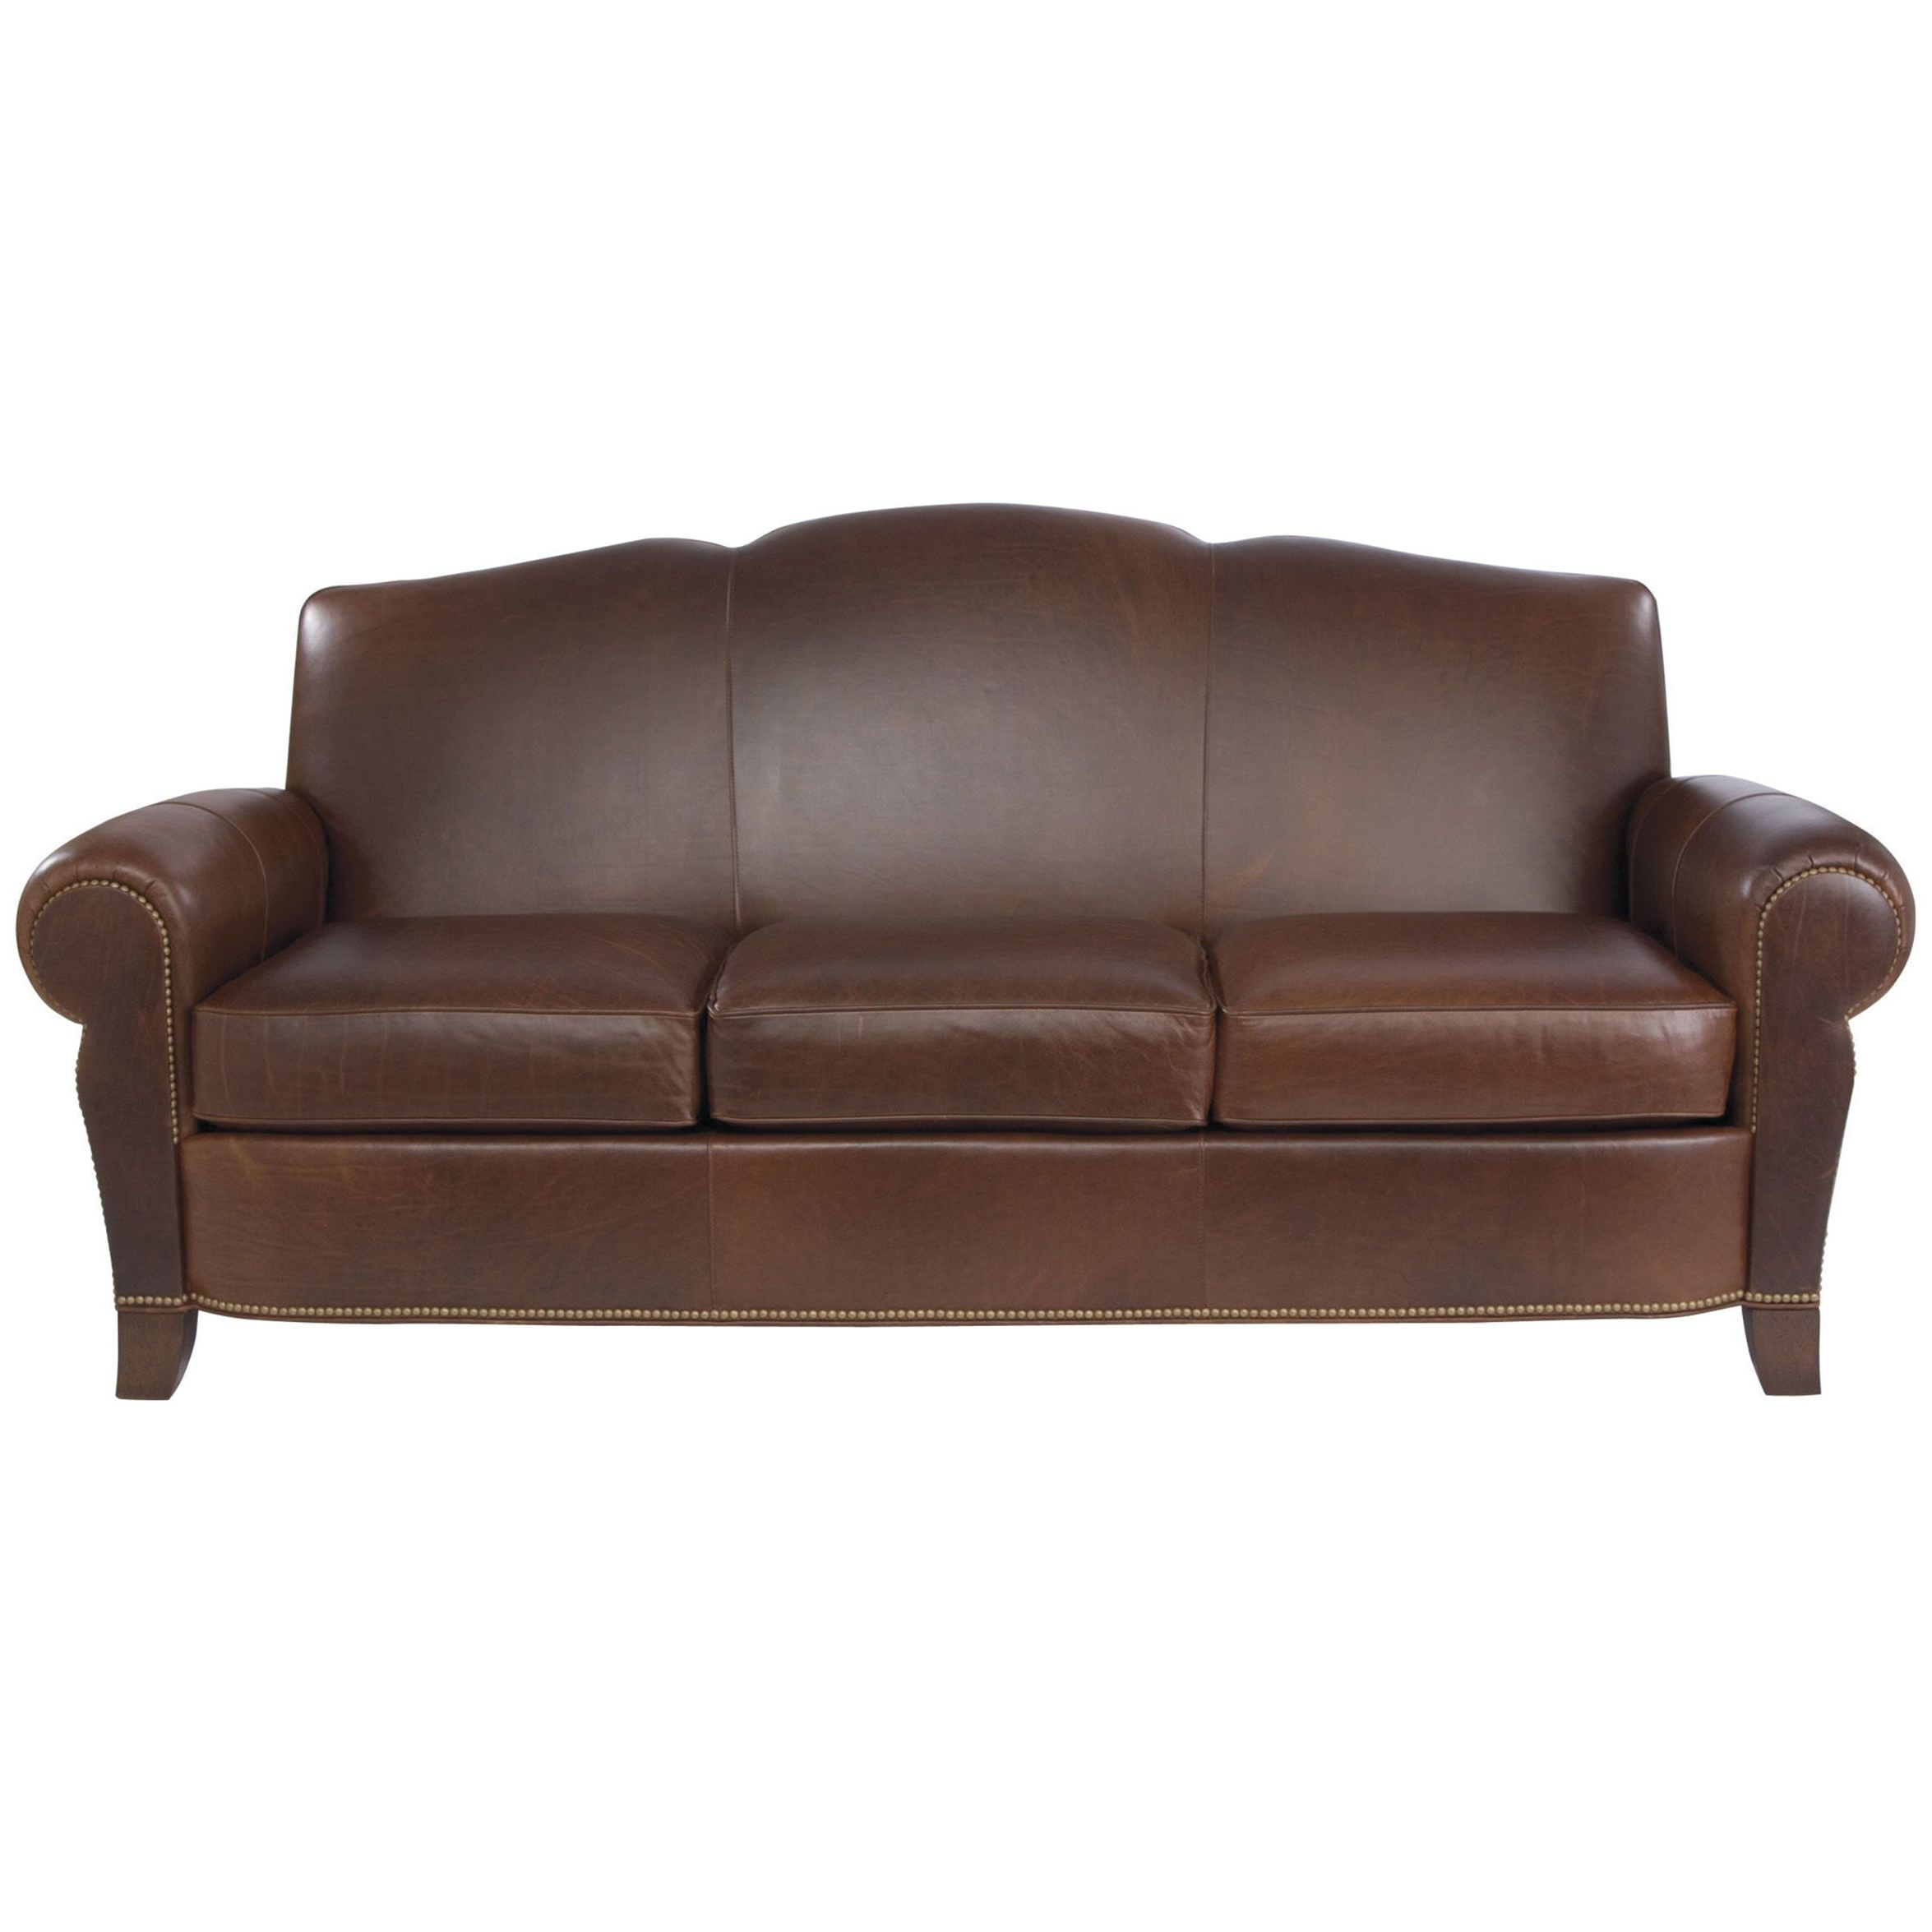 Famous Paloma Three Cushion Leather Sofa – Ethan Allen Us Can Be Pertaining To Customized Sofas (View 7 of 20)